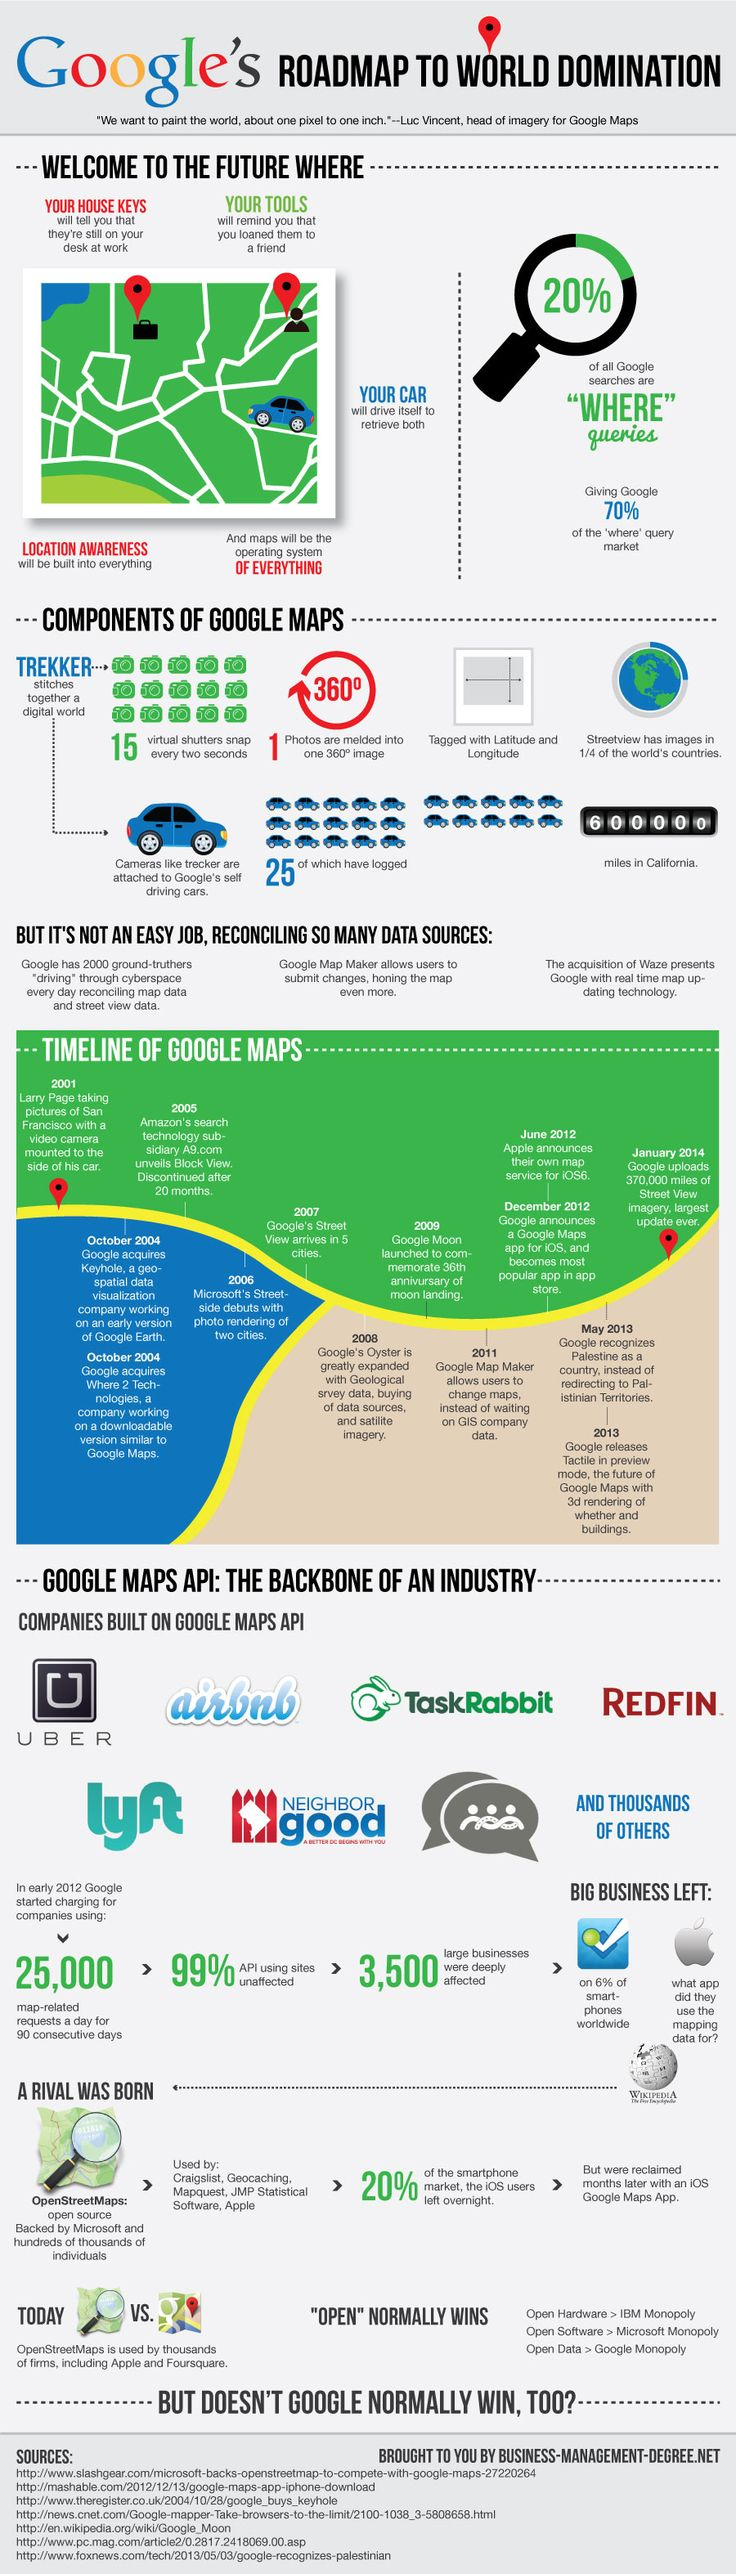 Google's Roadmap to World Domination [Infographic]